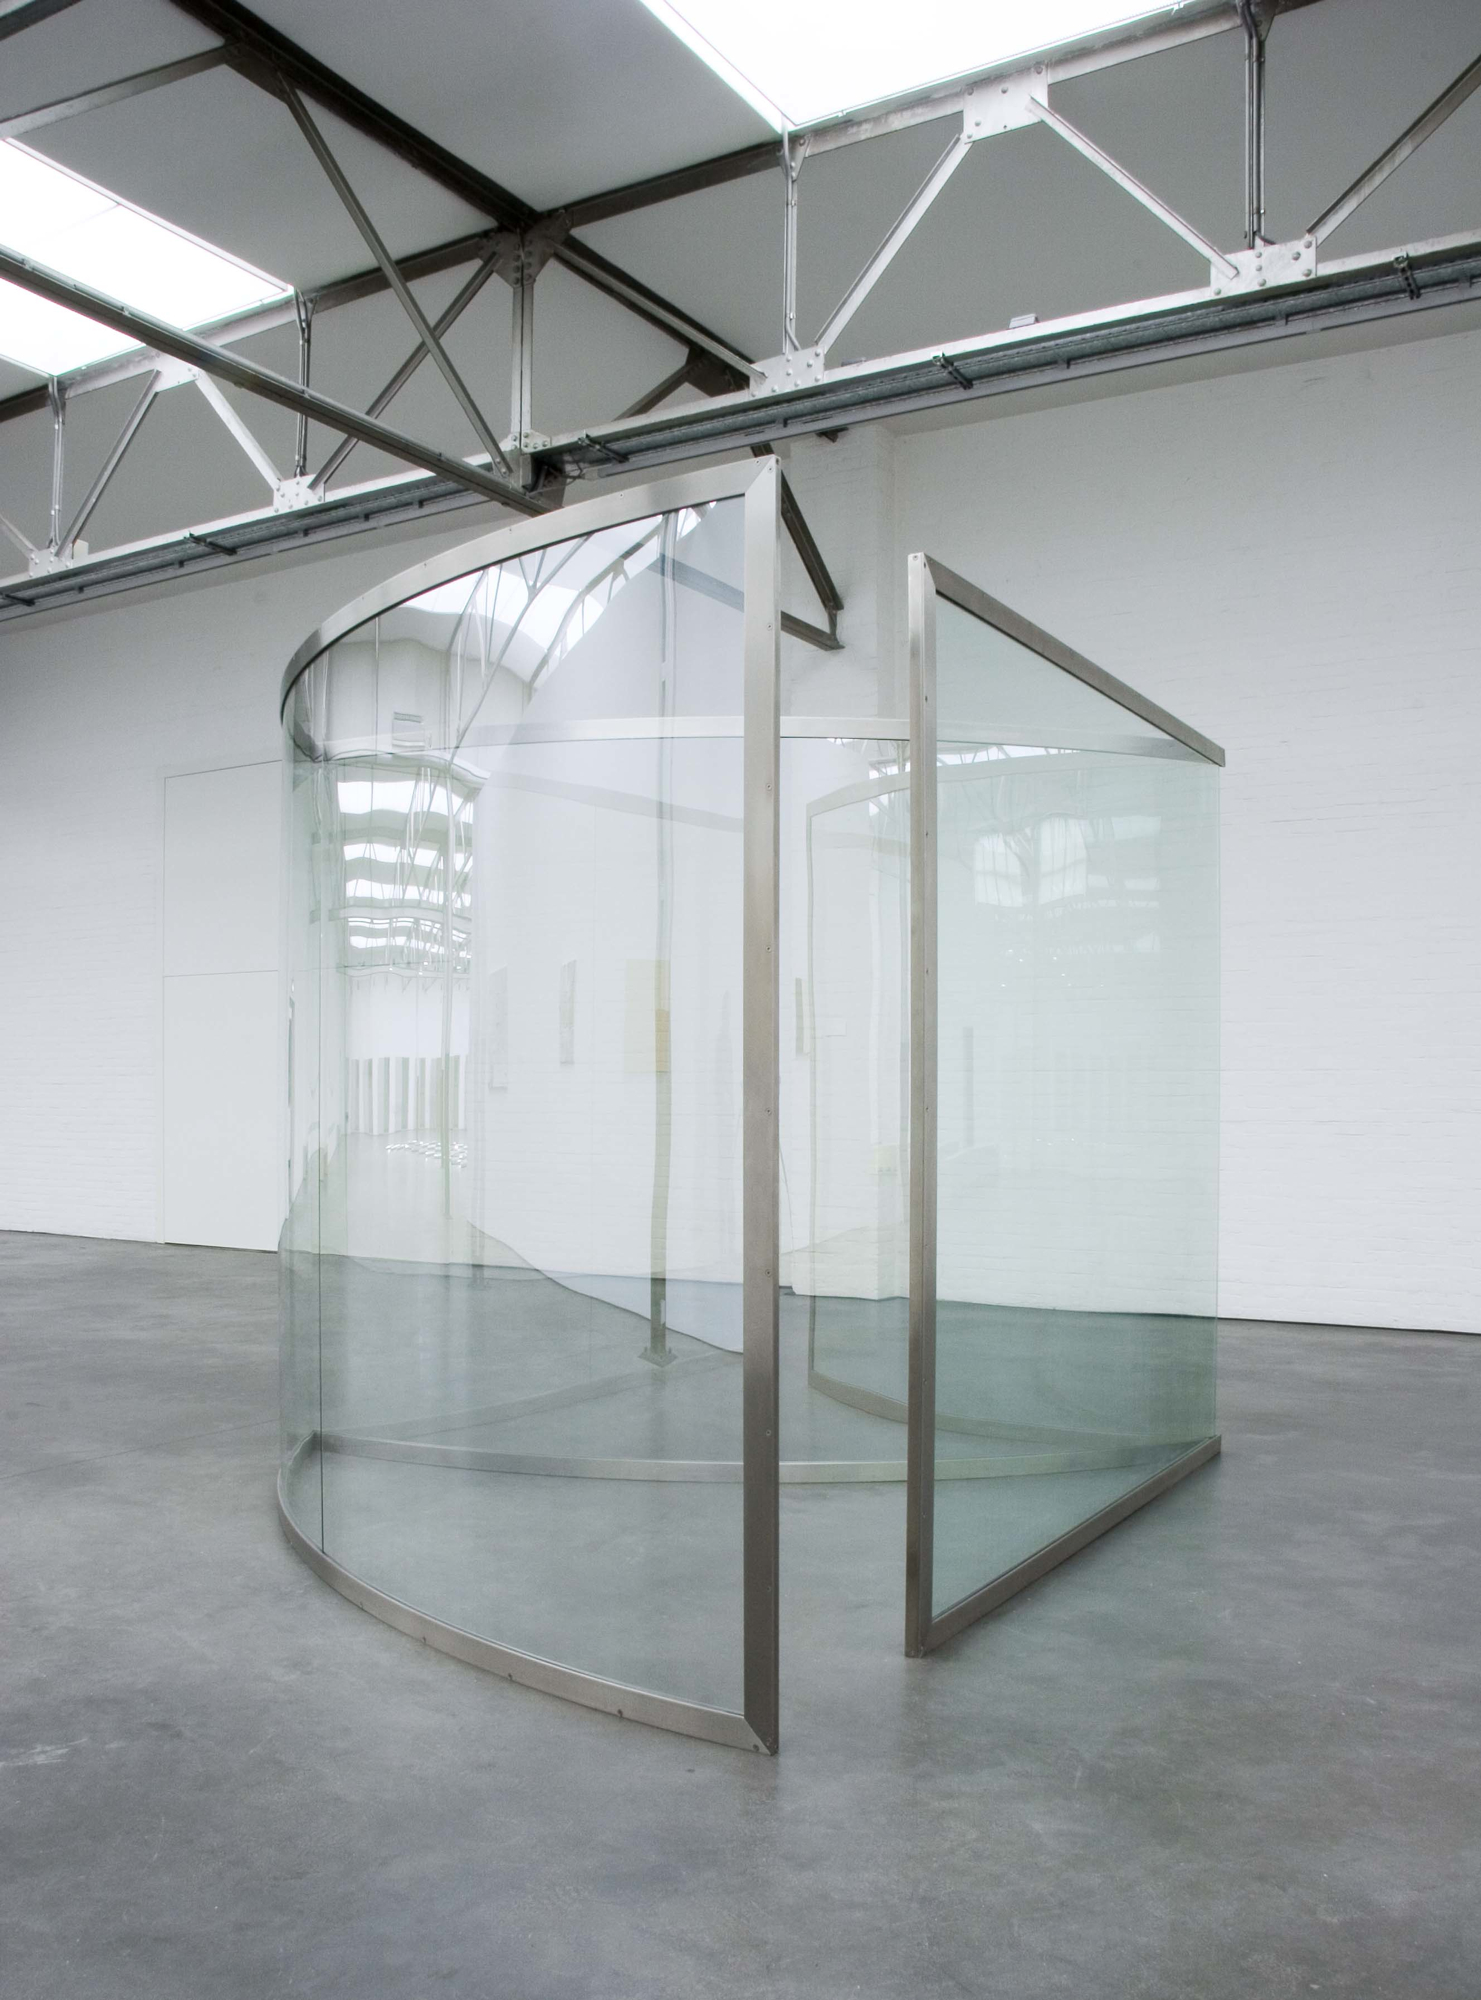 Graham Pavilion - 2005 - stainless steel frame, 2 way mirror glass - photo Henk Geraedts - collection De Pont